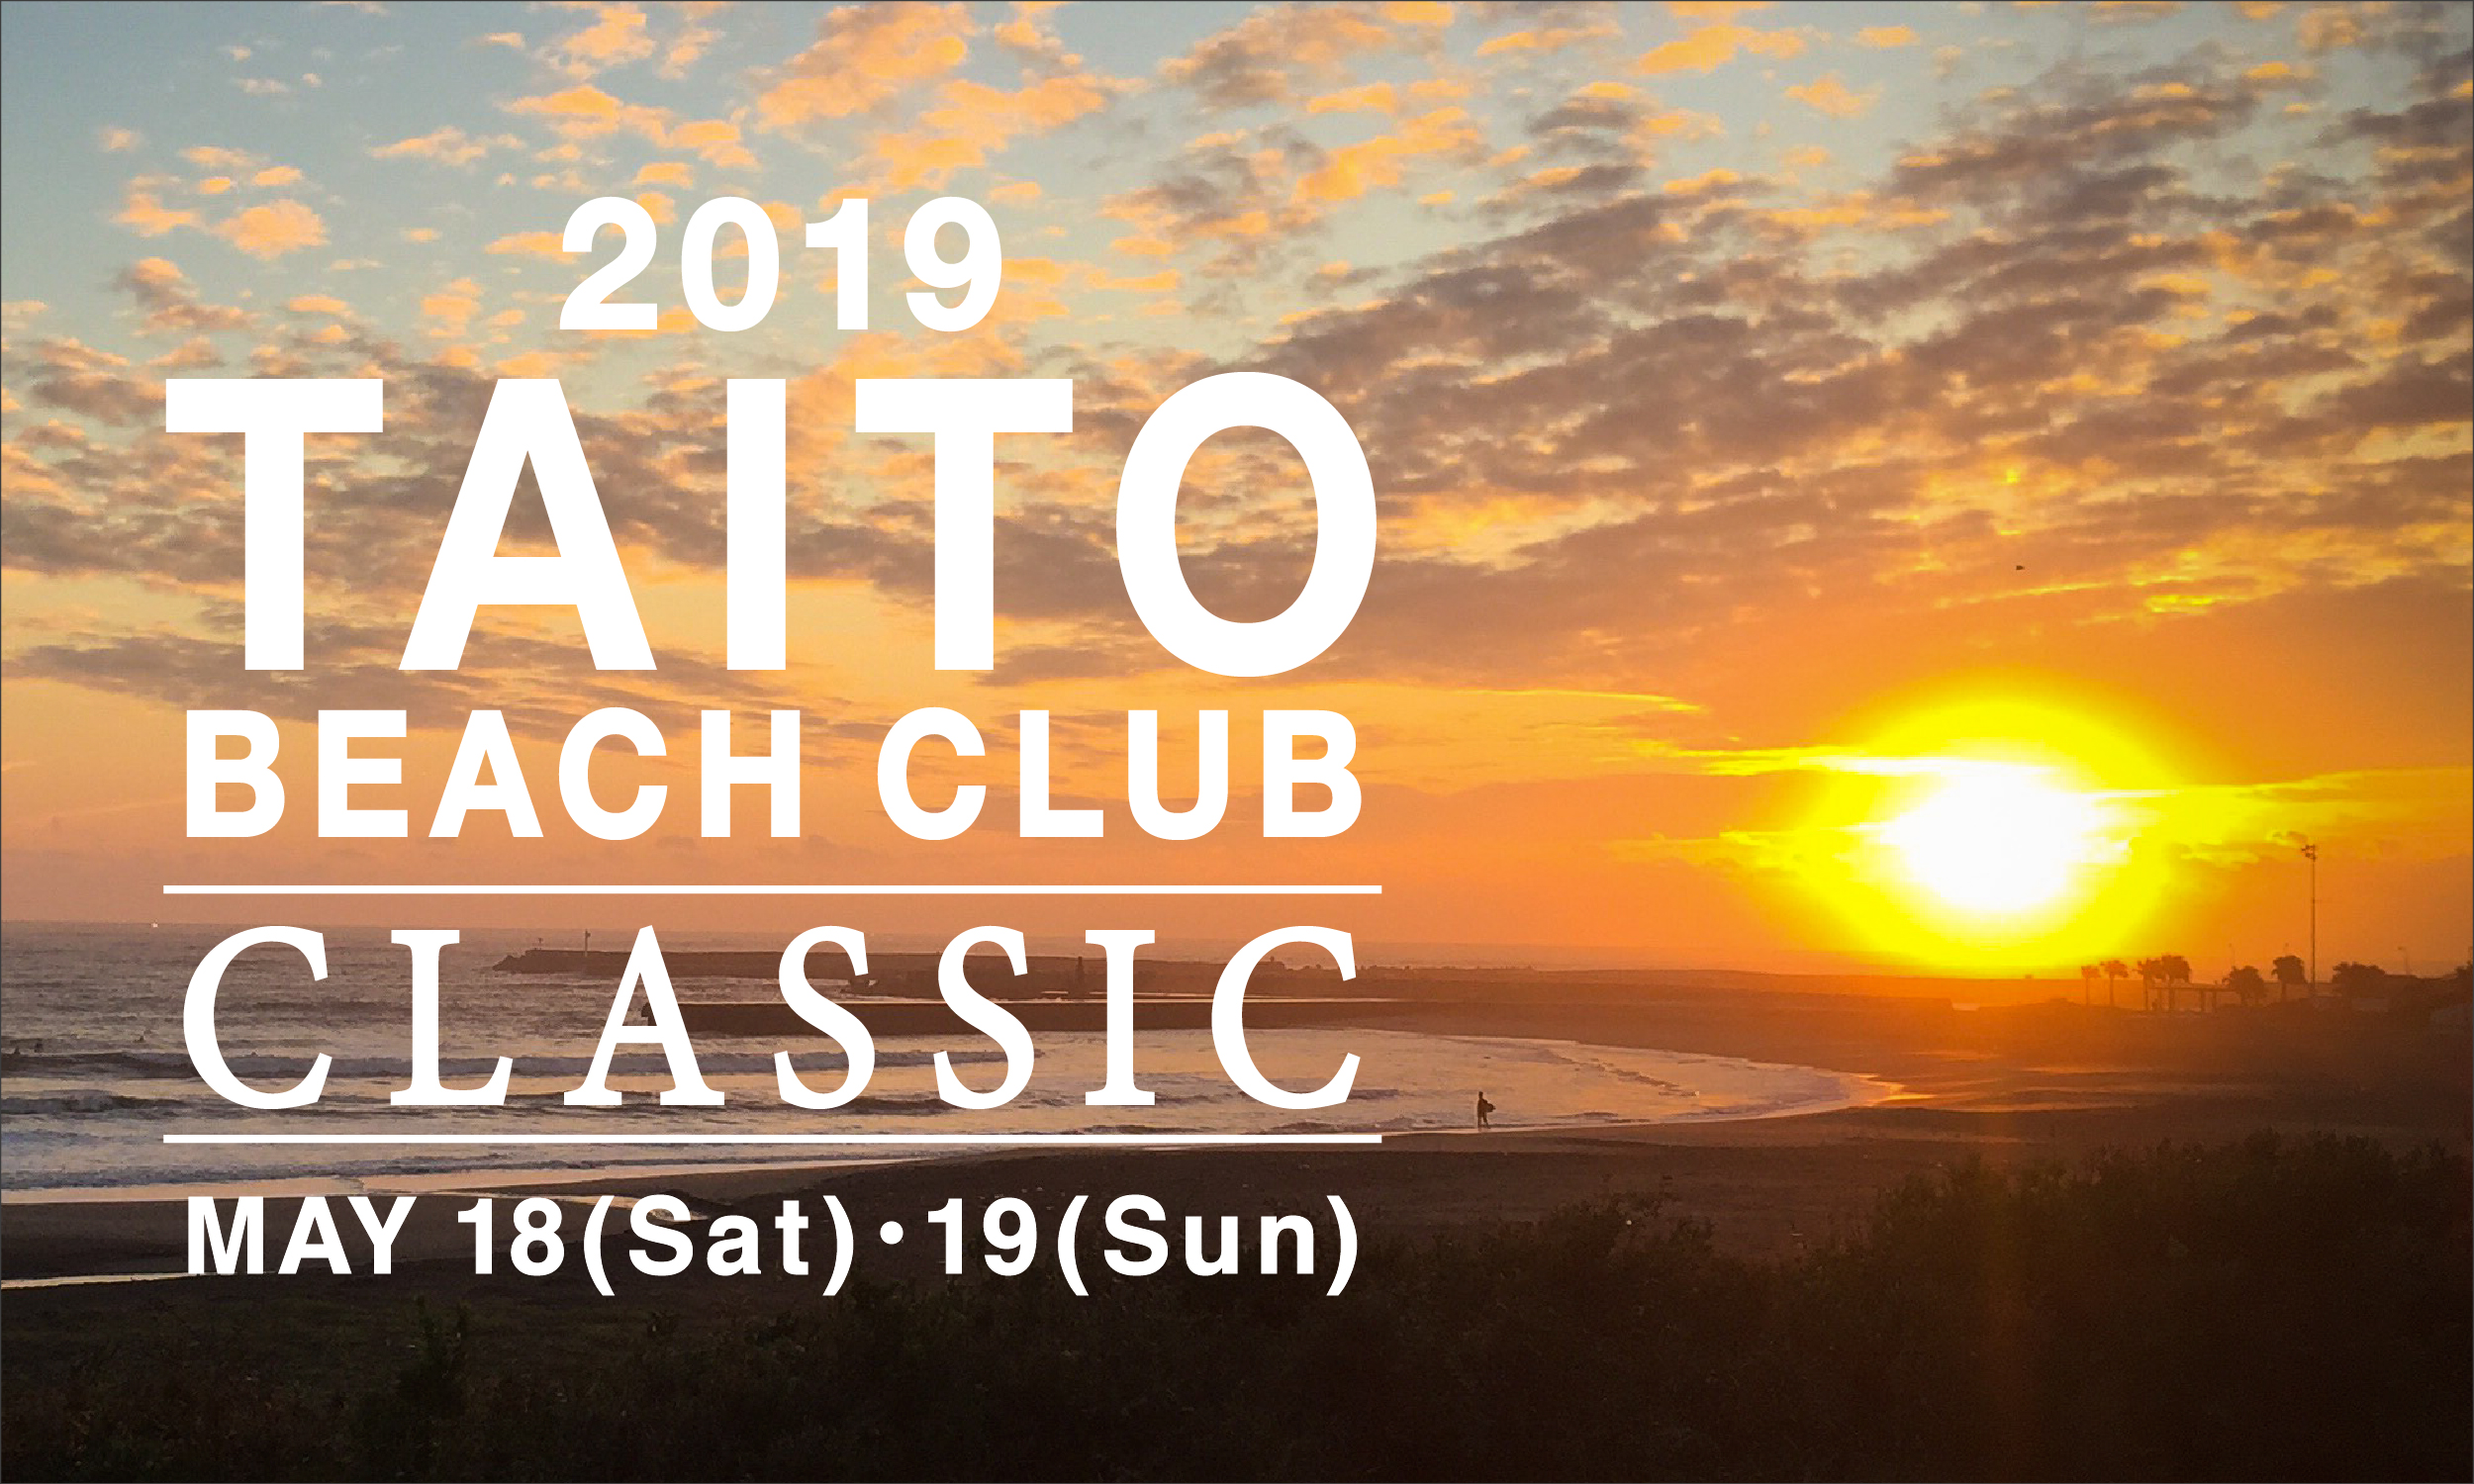 TAITO BEACH CLUB 2019